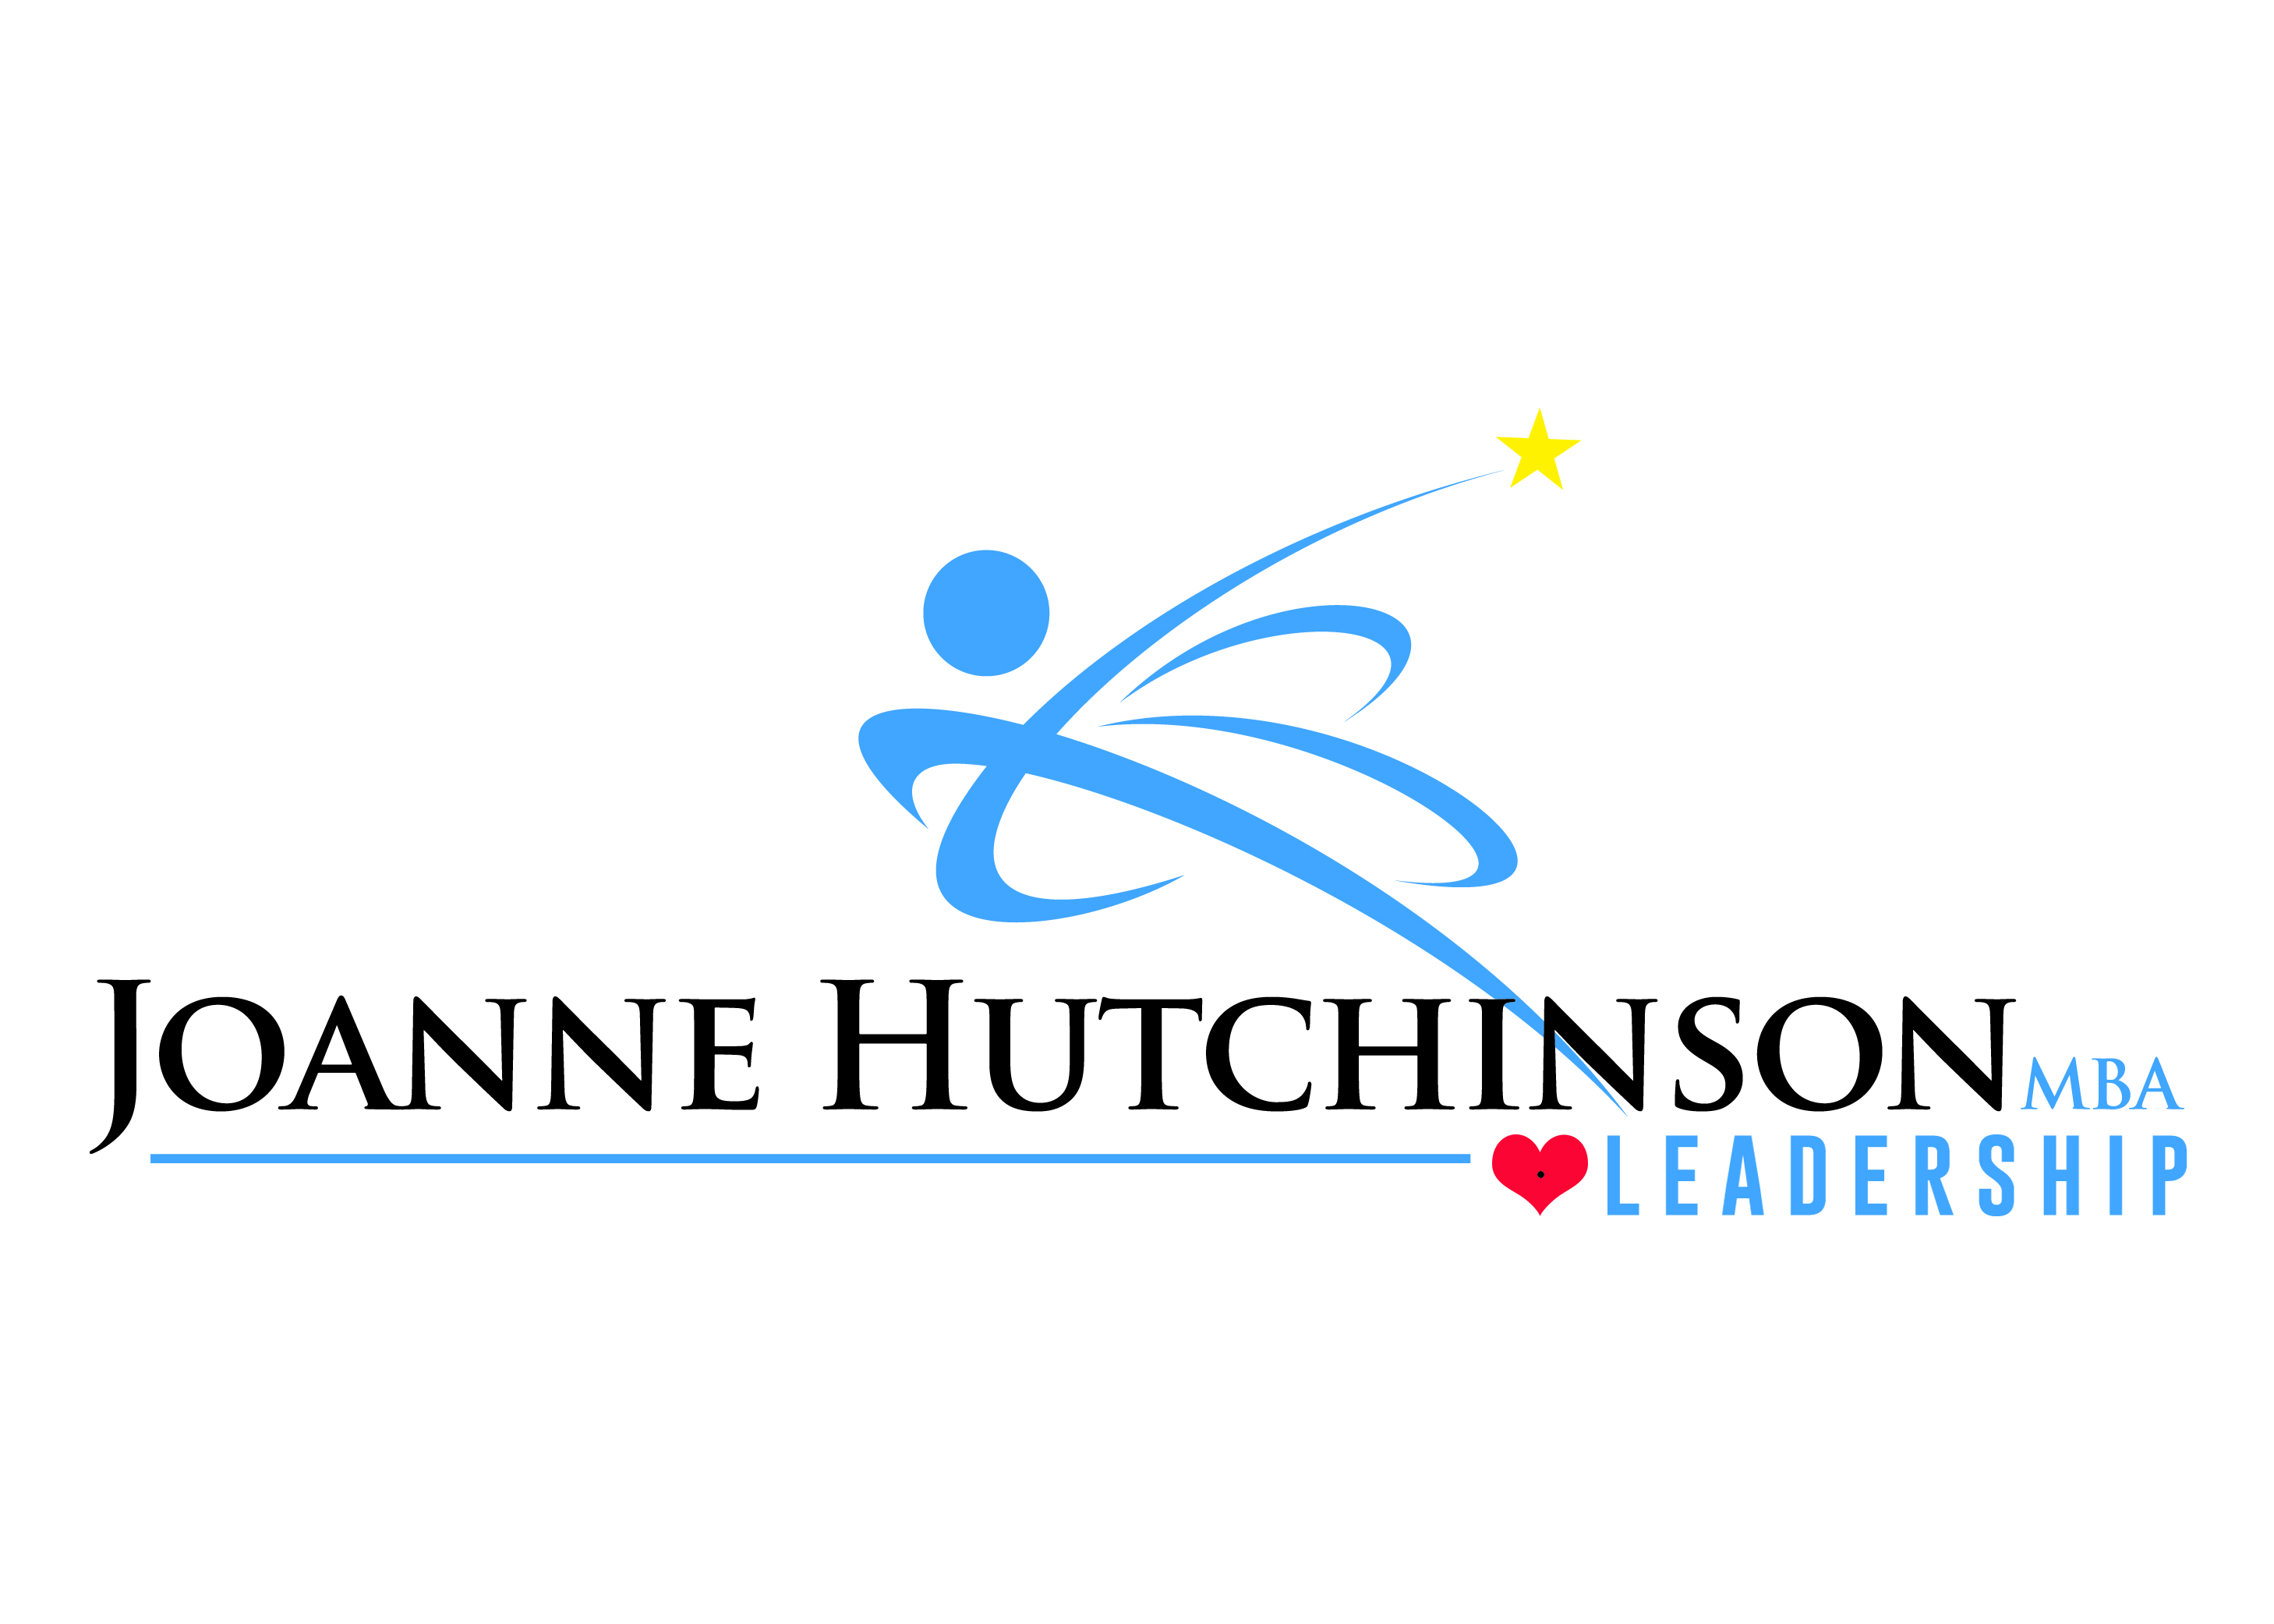 Joanne Hutchinson Leadership